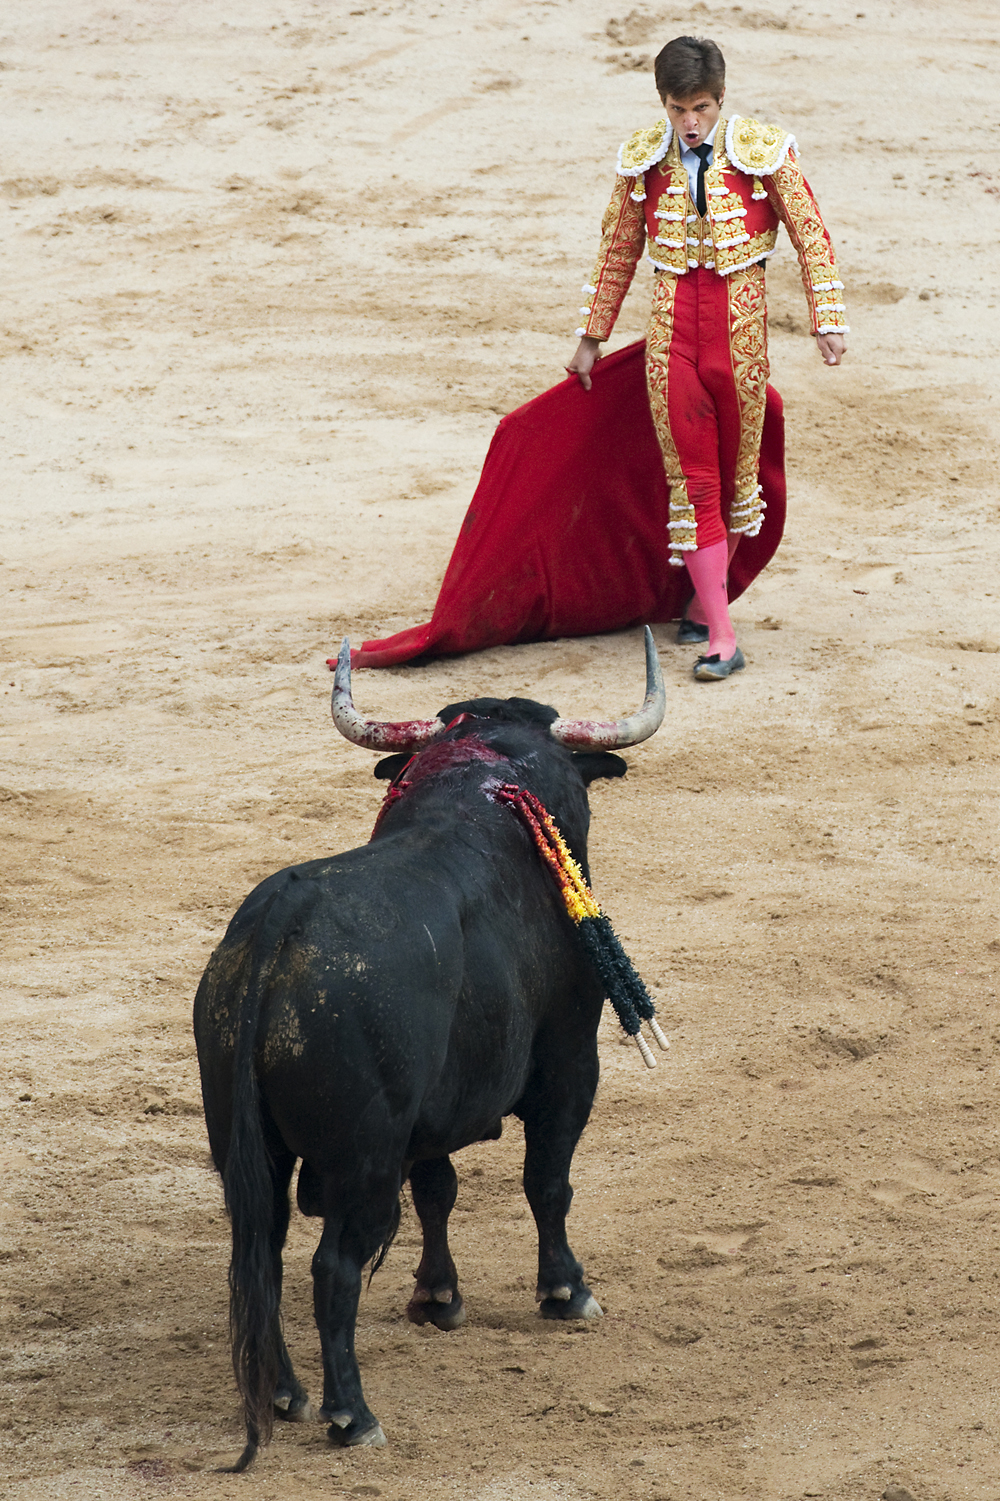 The matador and wounded bull face each other during the final act of a bullfight called  Tercio de Muerte  in Pamplona's Plaza de Toros, Spain. A bullfight occurs every evening throughout the week long festival of San Fermin.